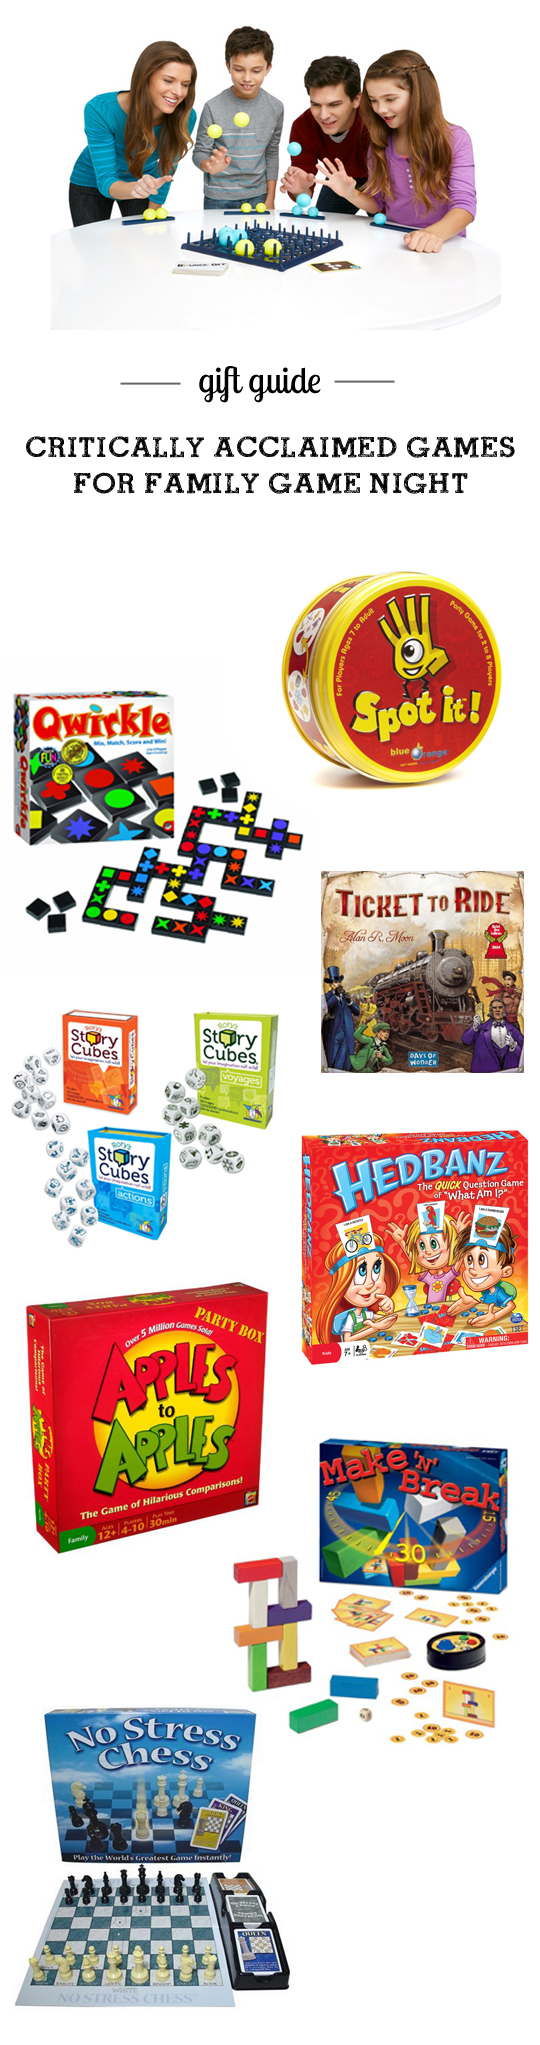 MPMK Toy Gift guide: best games kid and family game night - part of 15 super helpful toy guides with detailed descriptions and age recs.